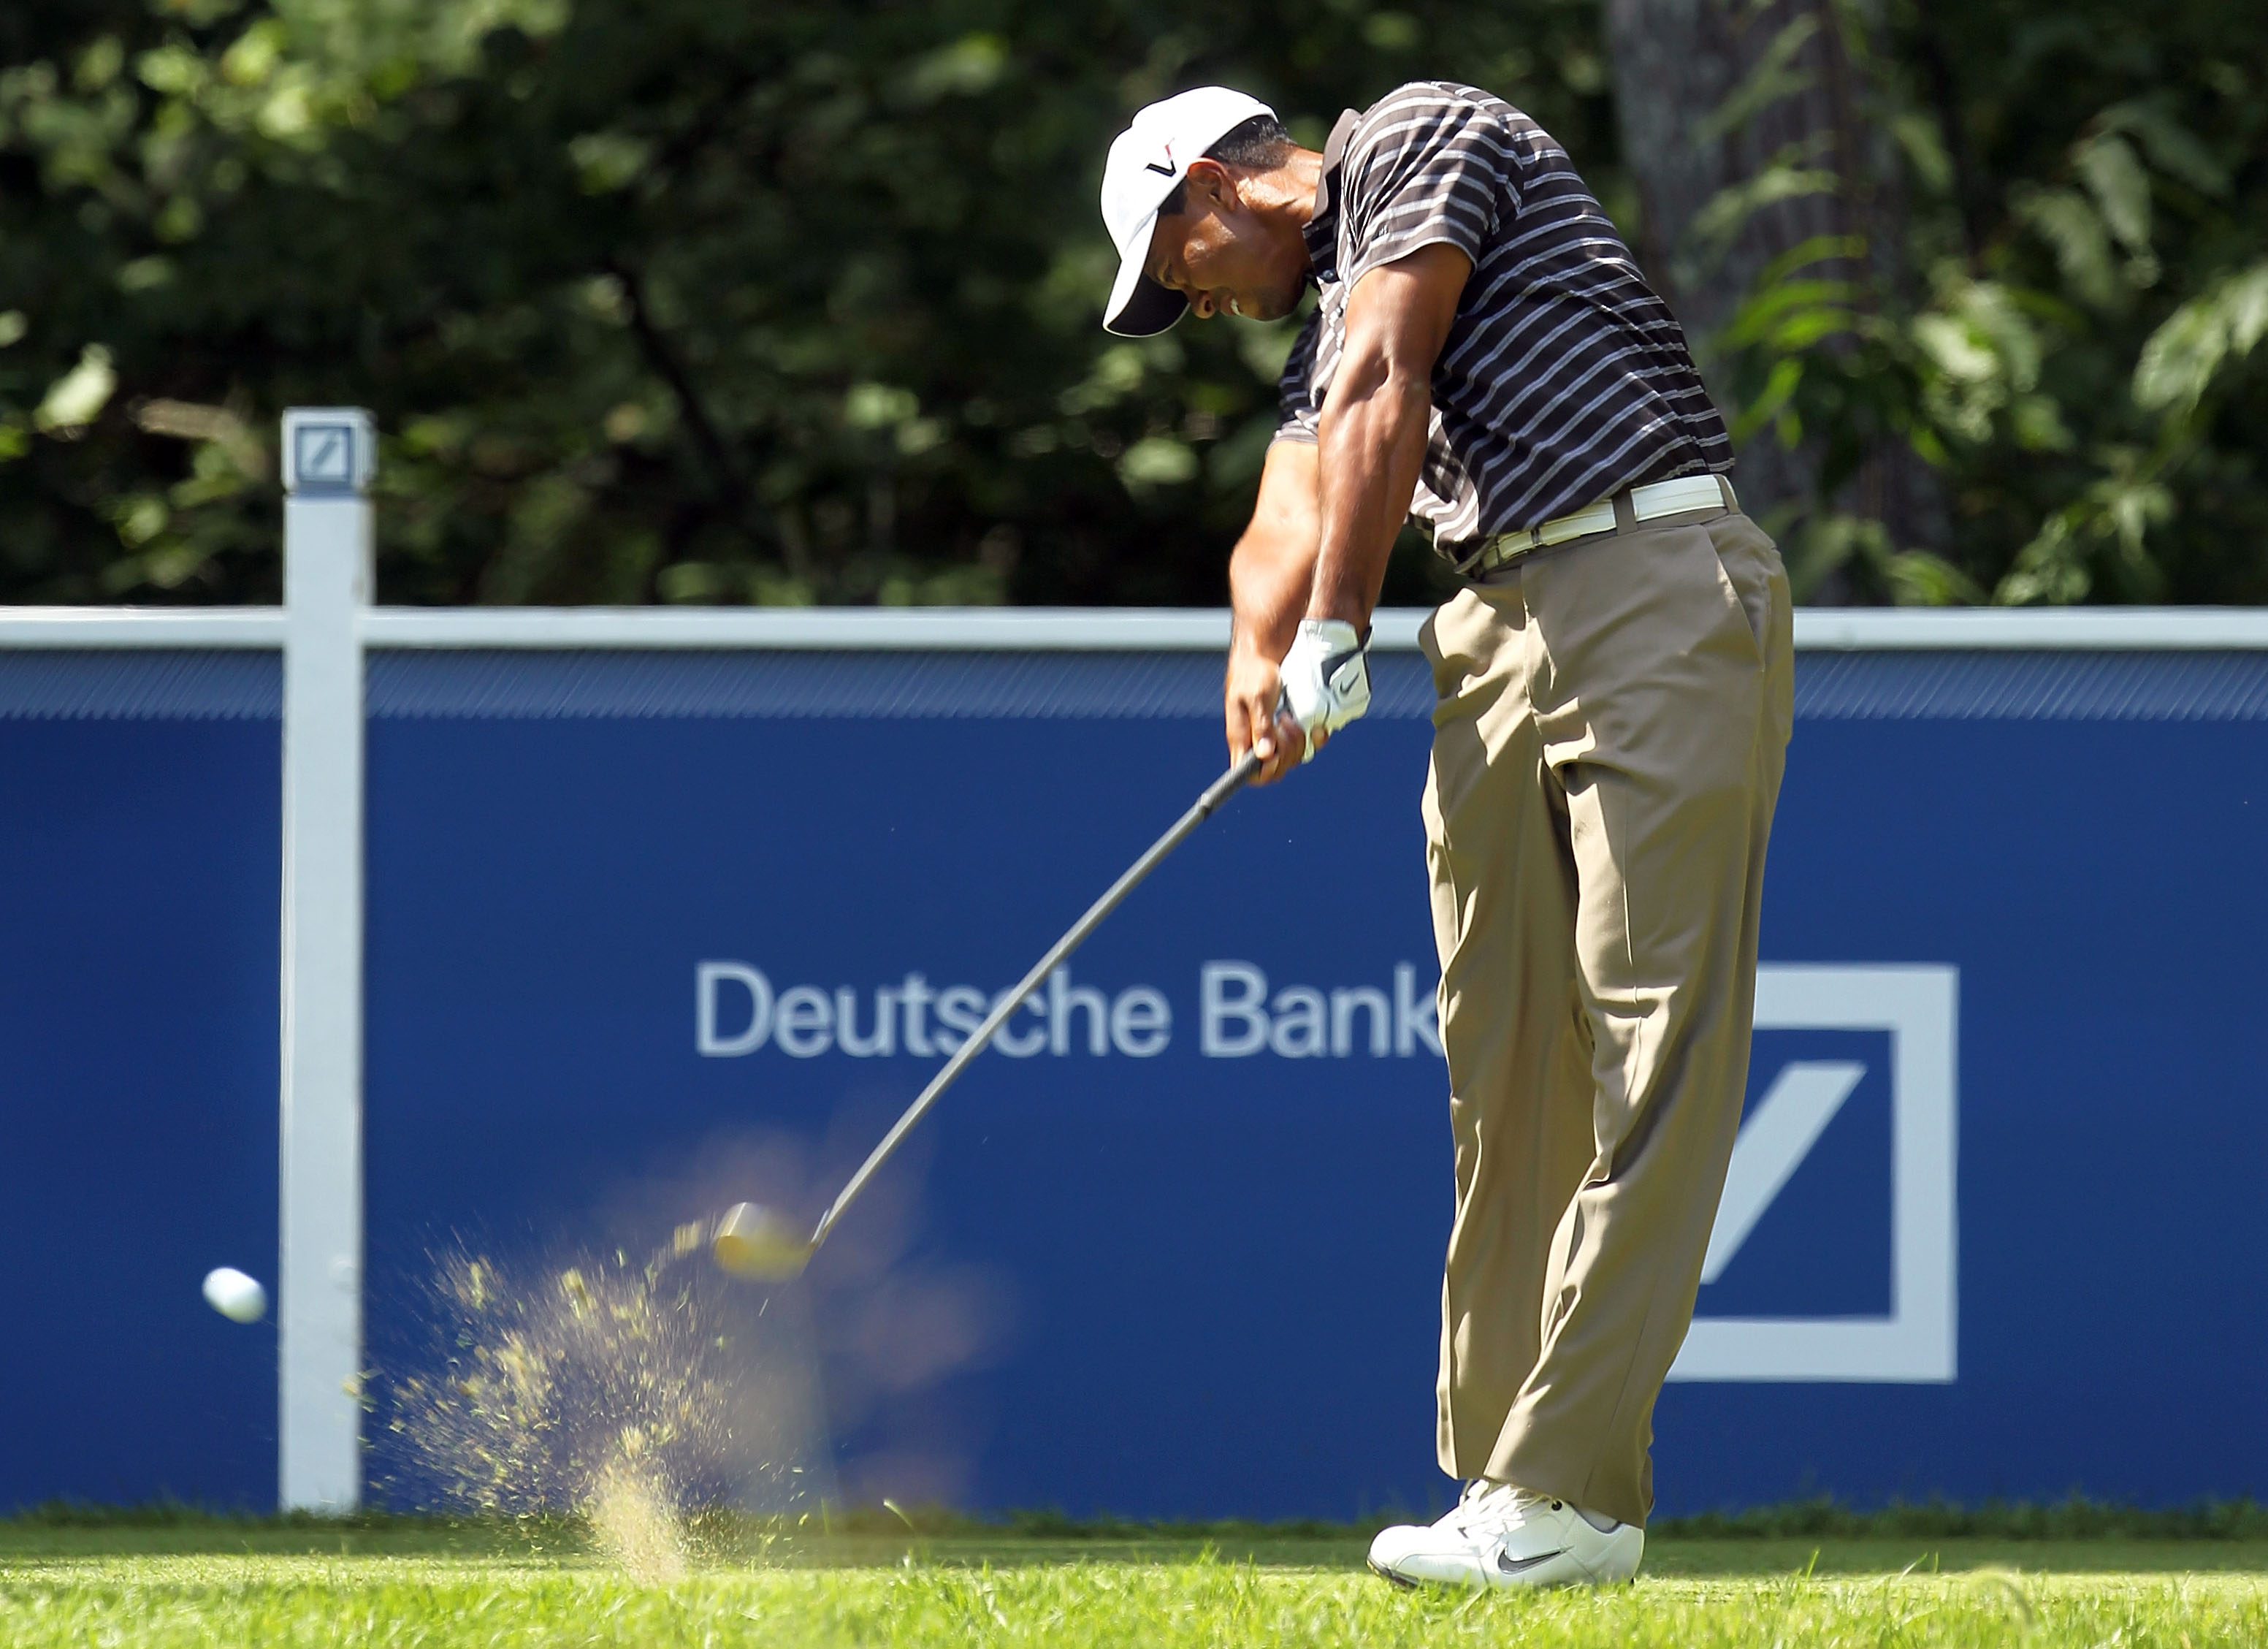 NORTON, MA - SEPTEMBER 05:  Tiger Woods tees off on the fourth hole during the third round of the Deutsche Bank Championship at TPC Boston on September 5, 2010 in Norton, Massachusetts.  (Photo by Mike Ehrmann/Getty Images)